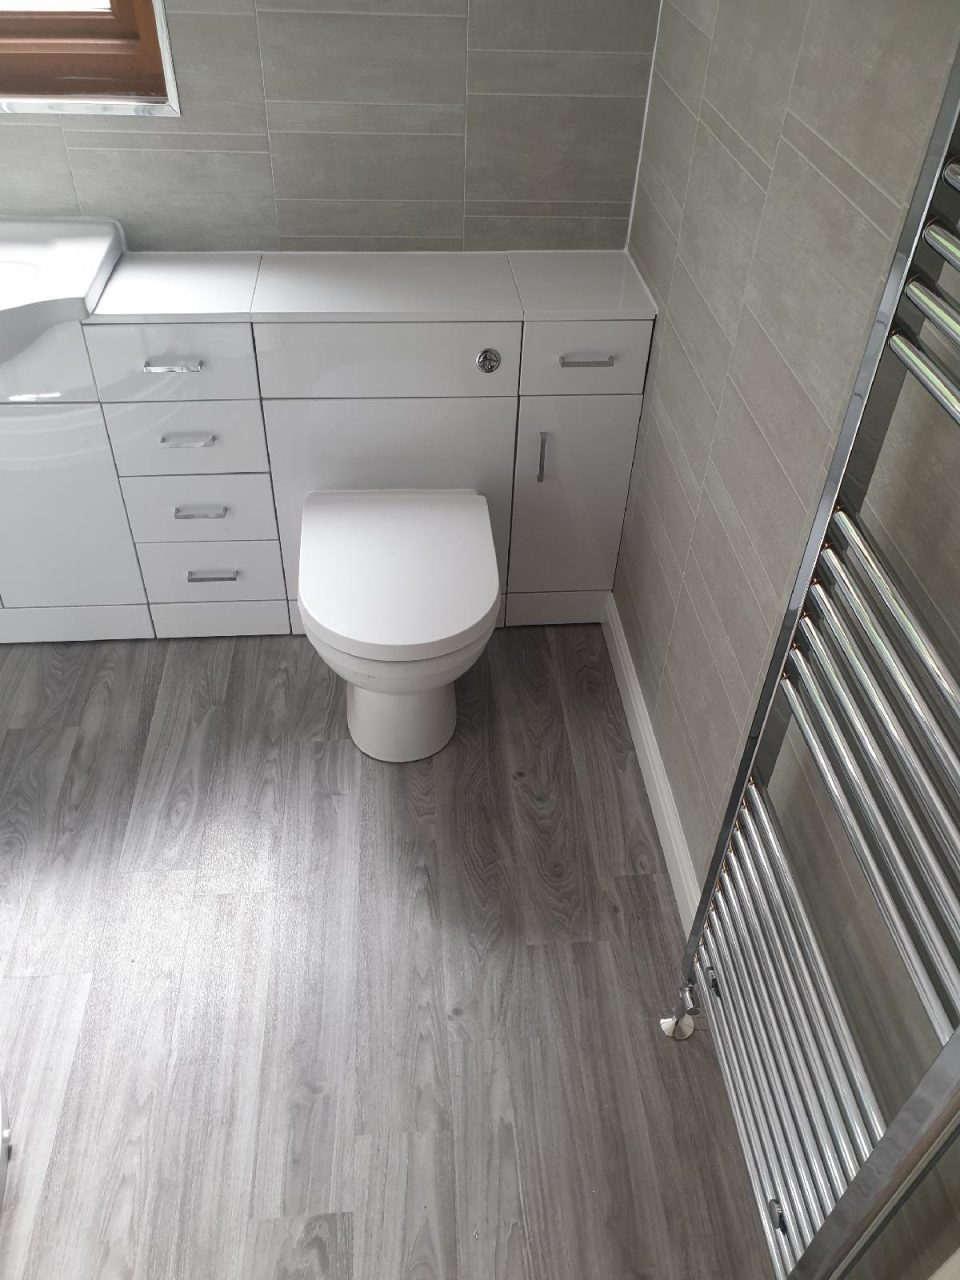 New Bathroom Mrs Wootton in Birmingham New Fitted Toilet and Chrome radiator